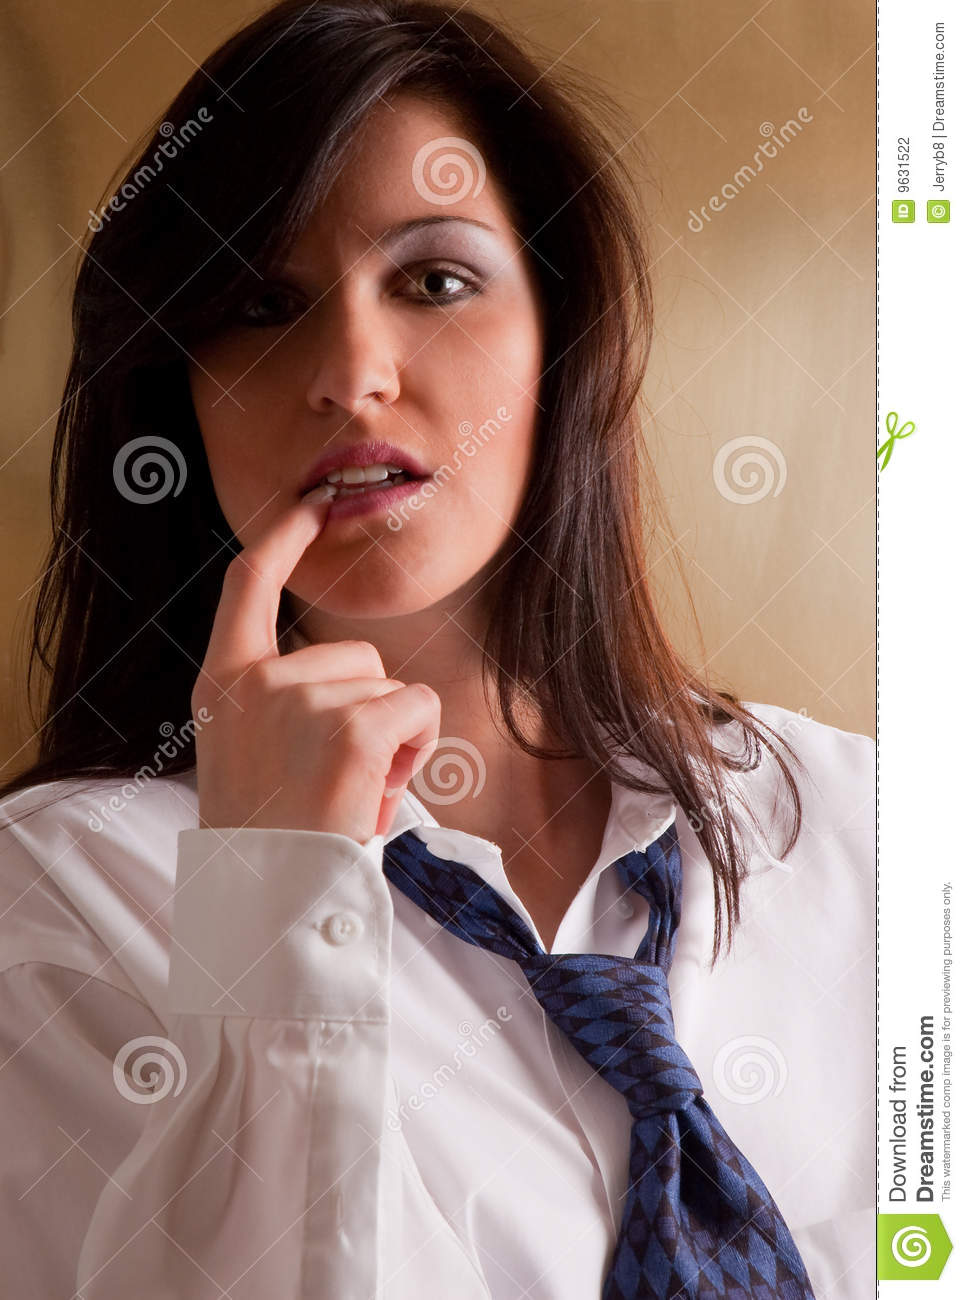 ... of a pretty, young woman casually wearing a man's white shirt and tie